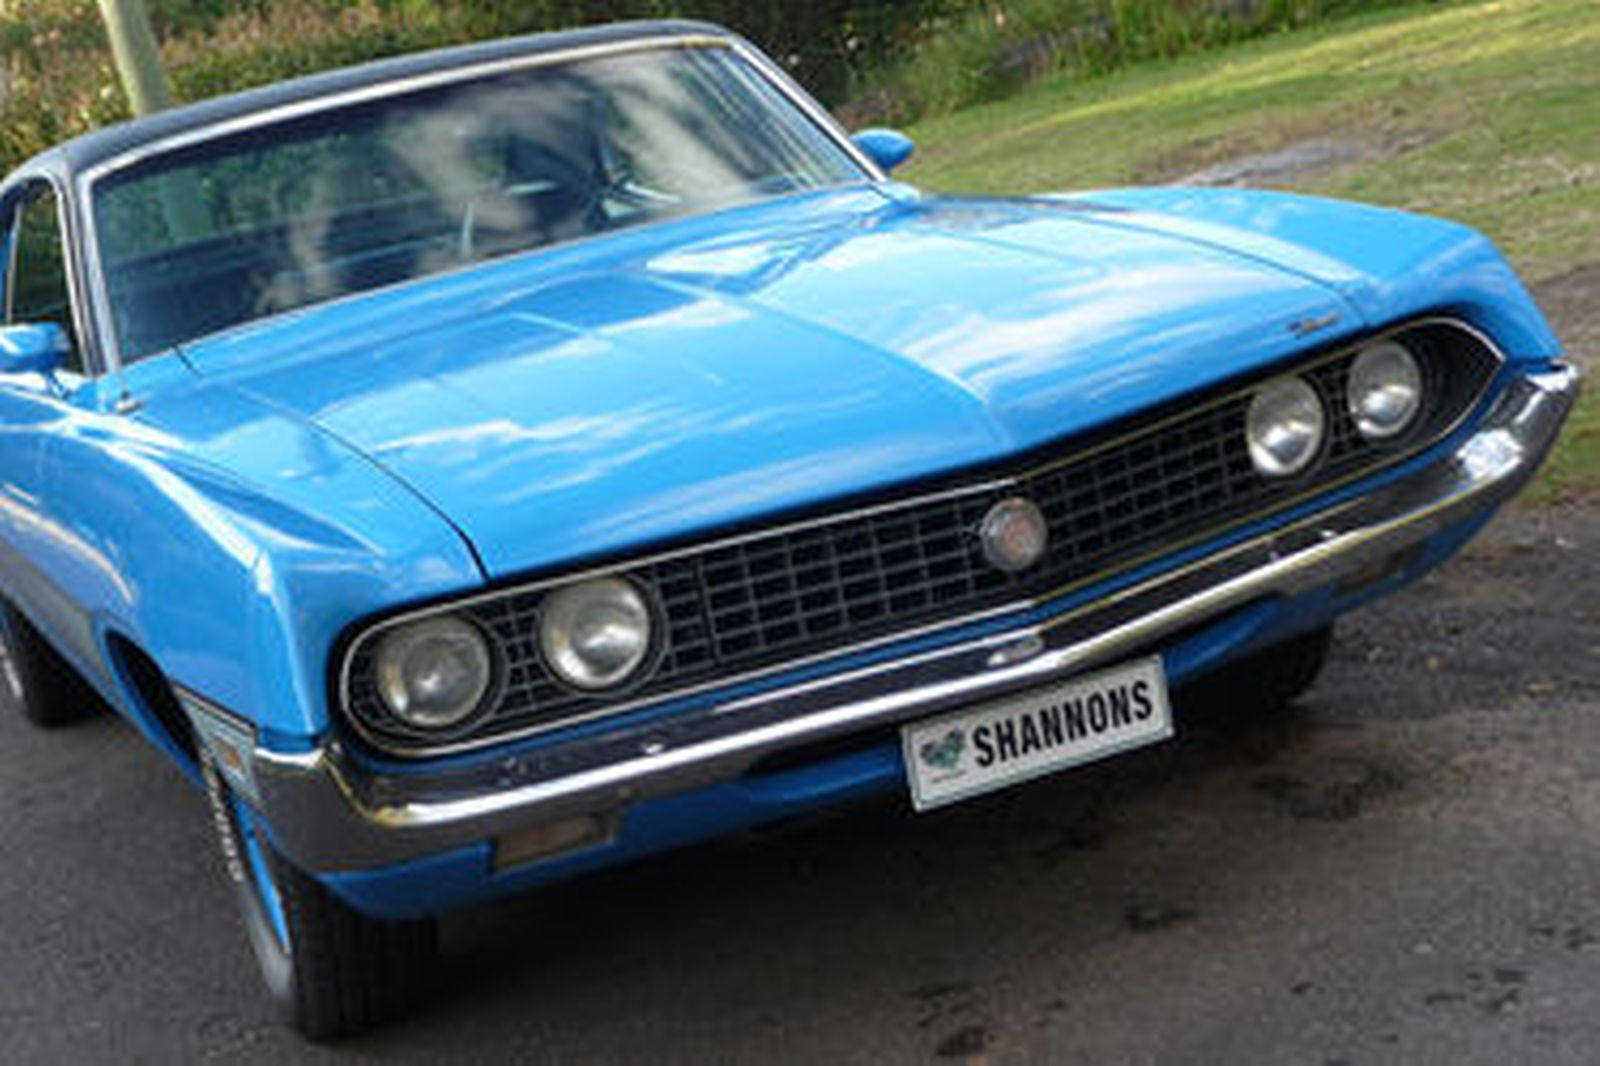 Sold: Ford Torino 351 V8 Coupe (LHD) Auctions - Lot 11